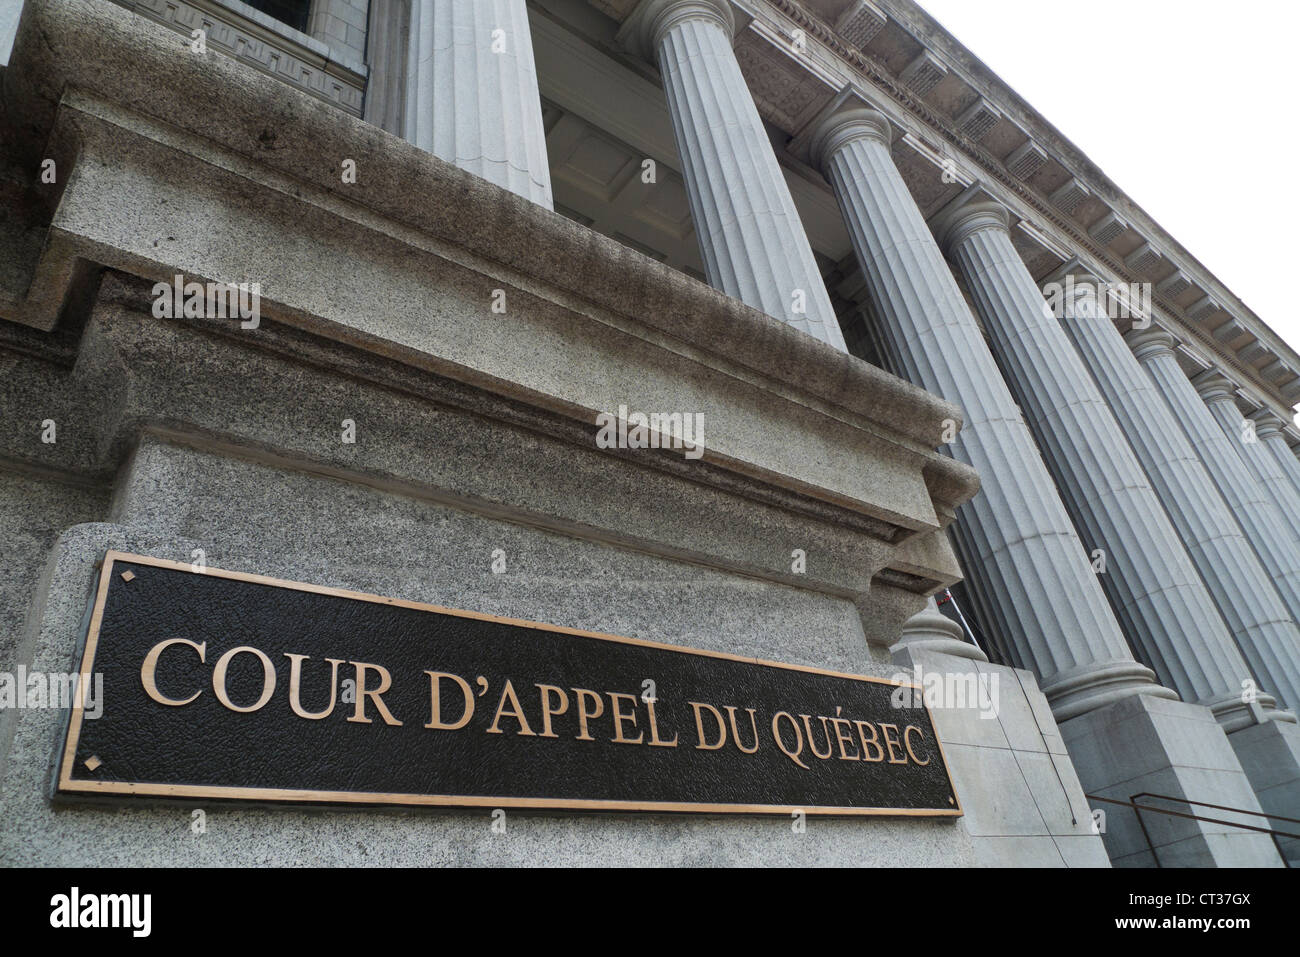 Court of Appeal of Quebec Cour D'Appel du Quebec sign on exterior of Canadian court building with columns Montreal - Stock Image